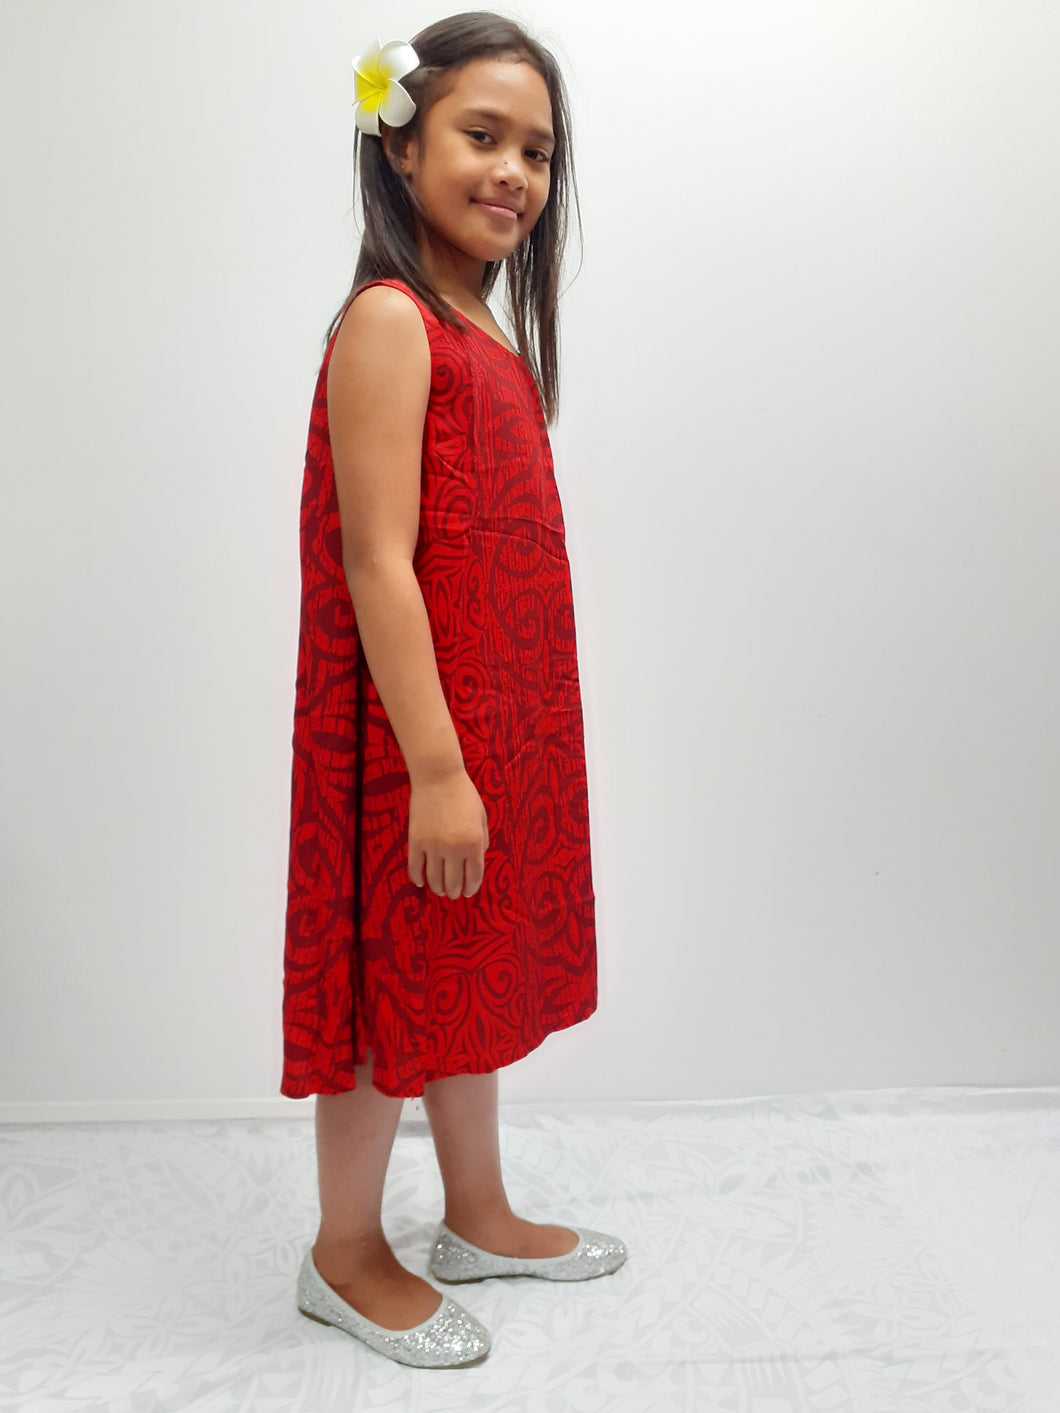 Tanoa Samoa Umbrella Dress-LG876 -Red